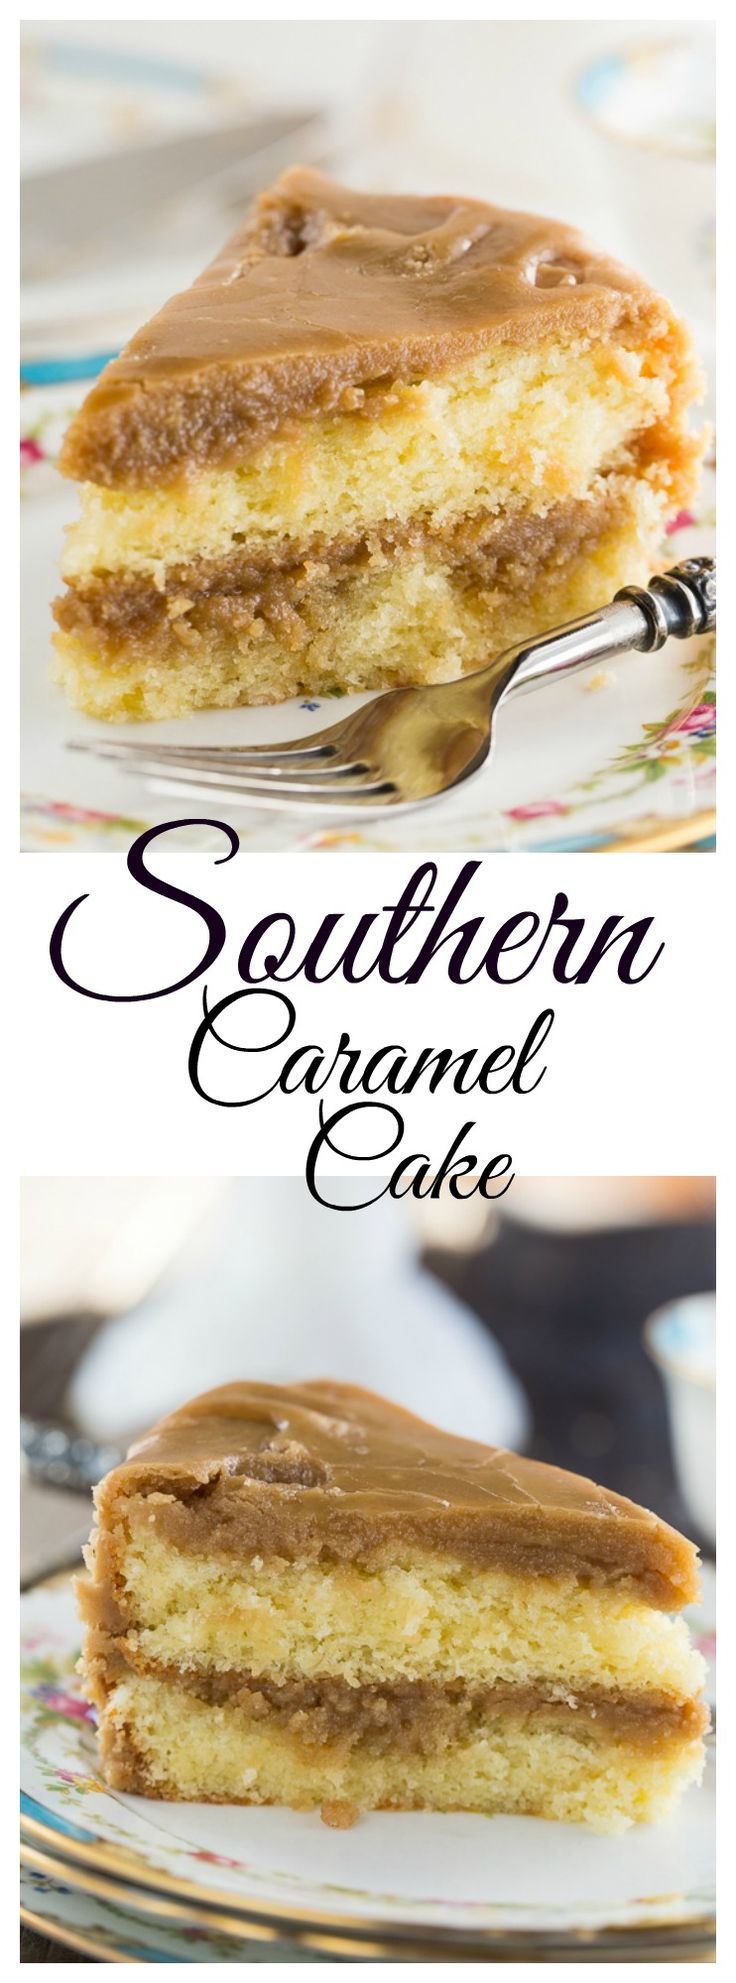 Southern Caramel Cake - 2 layers of moist yellow cake covered with a super sweet caramel icing.